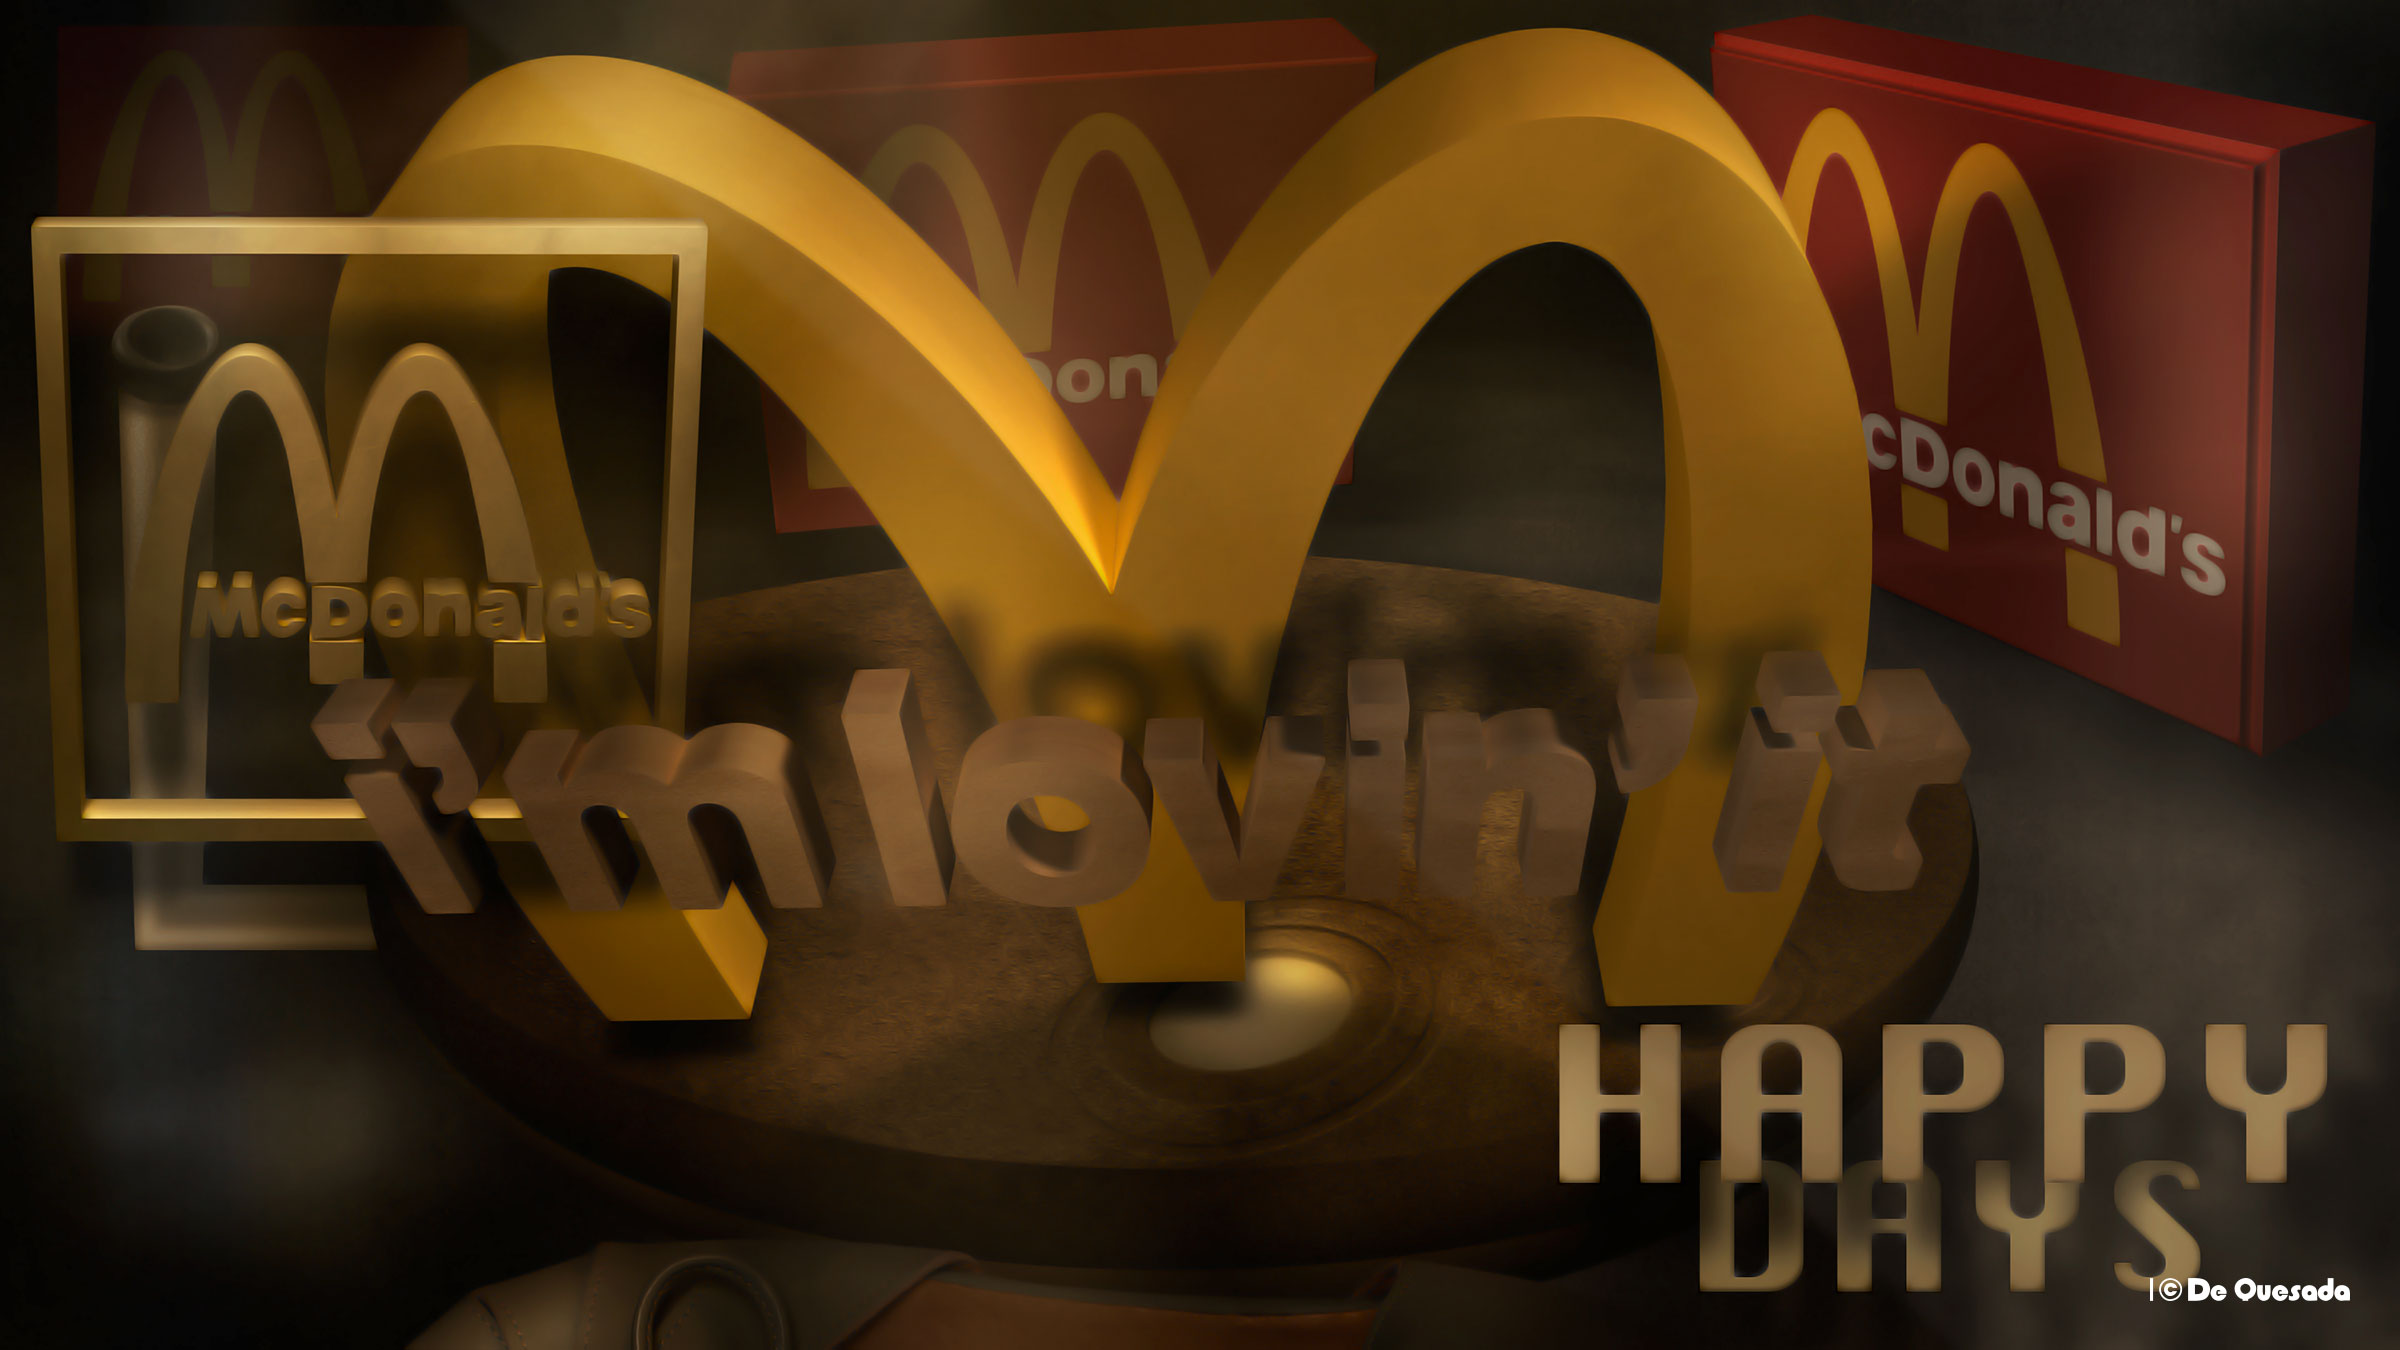 Happy Days, 3d Mac Donalds Yellow Logo